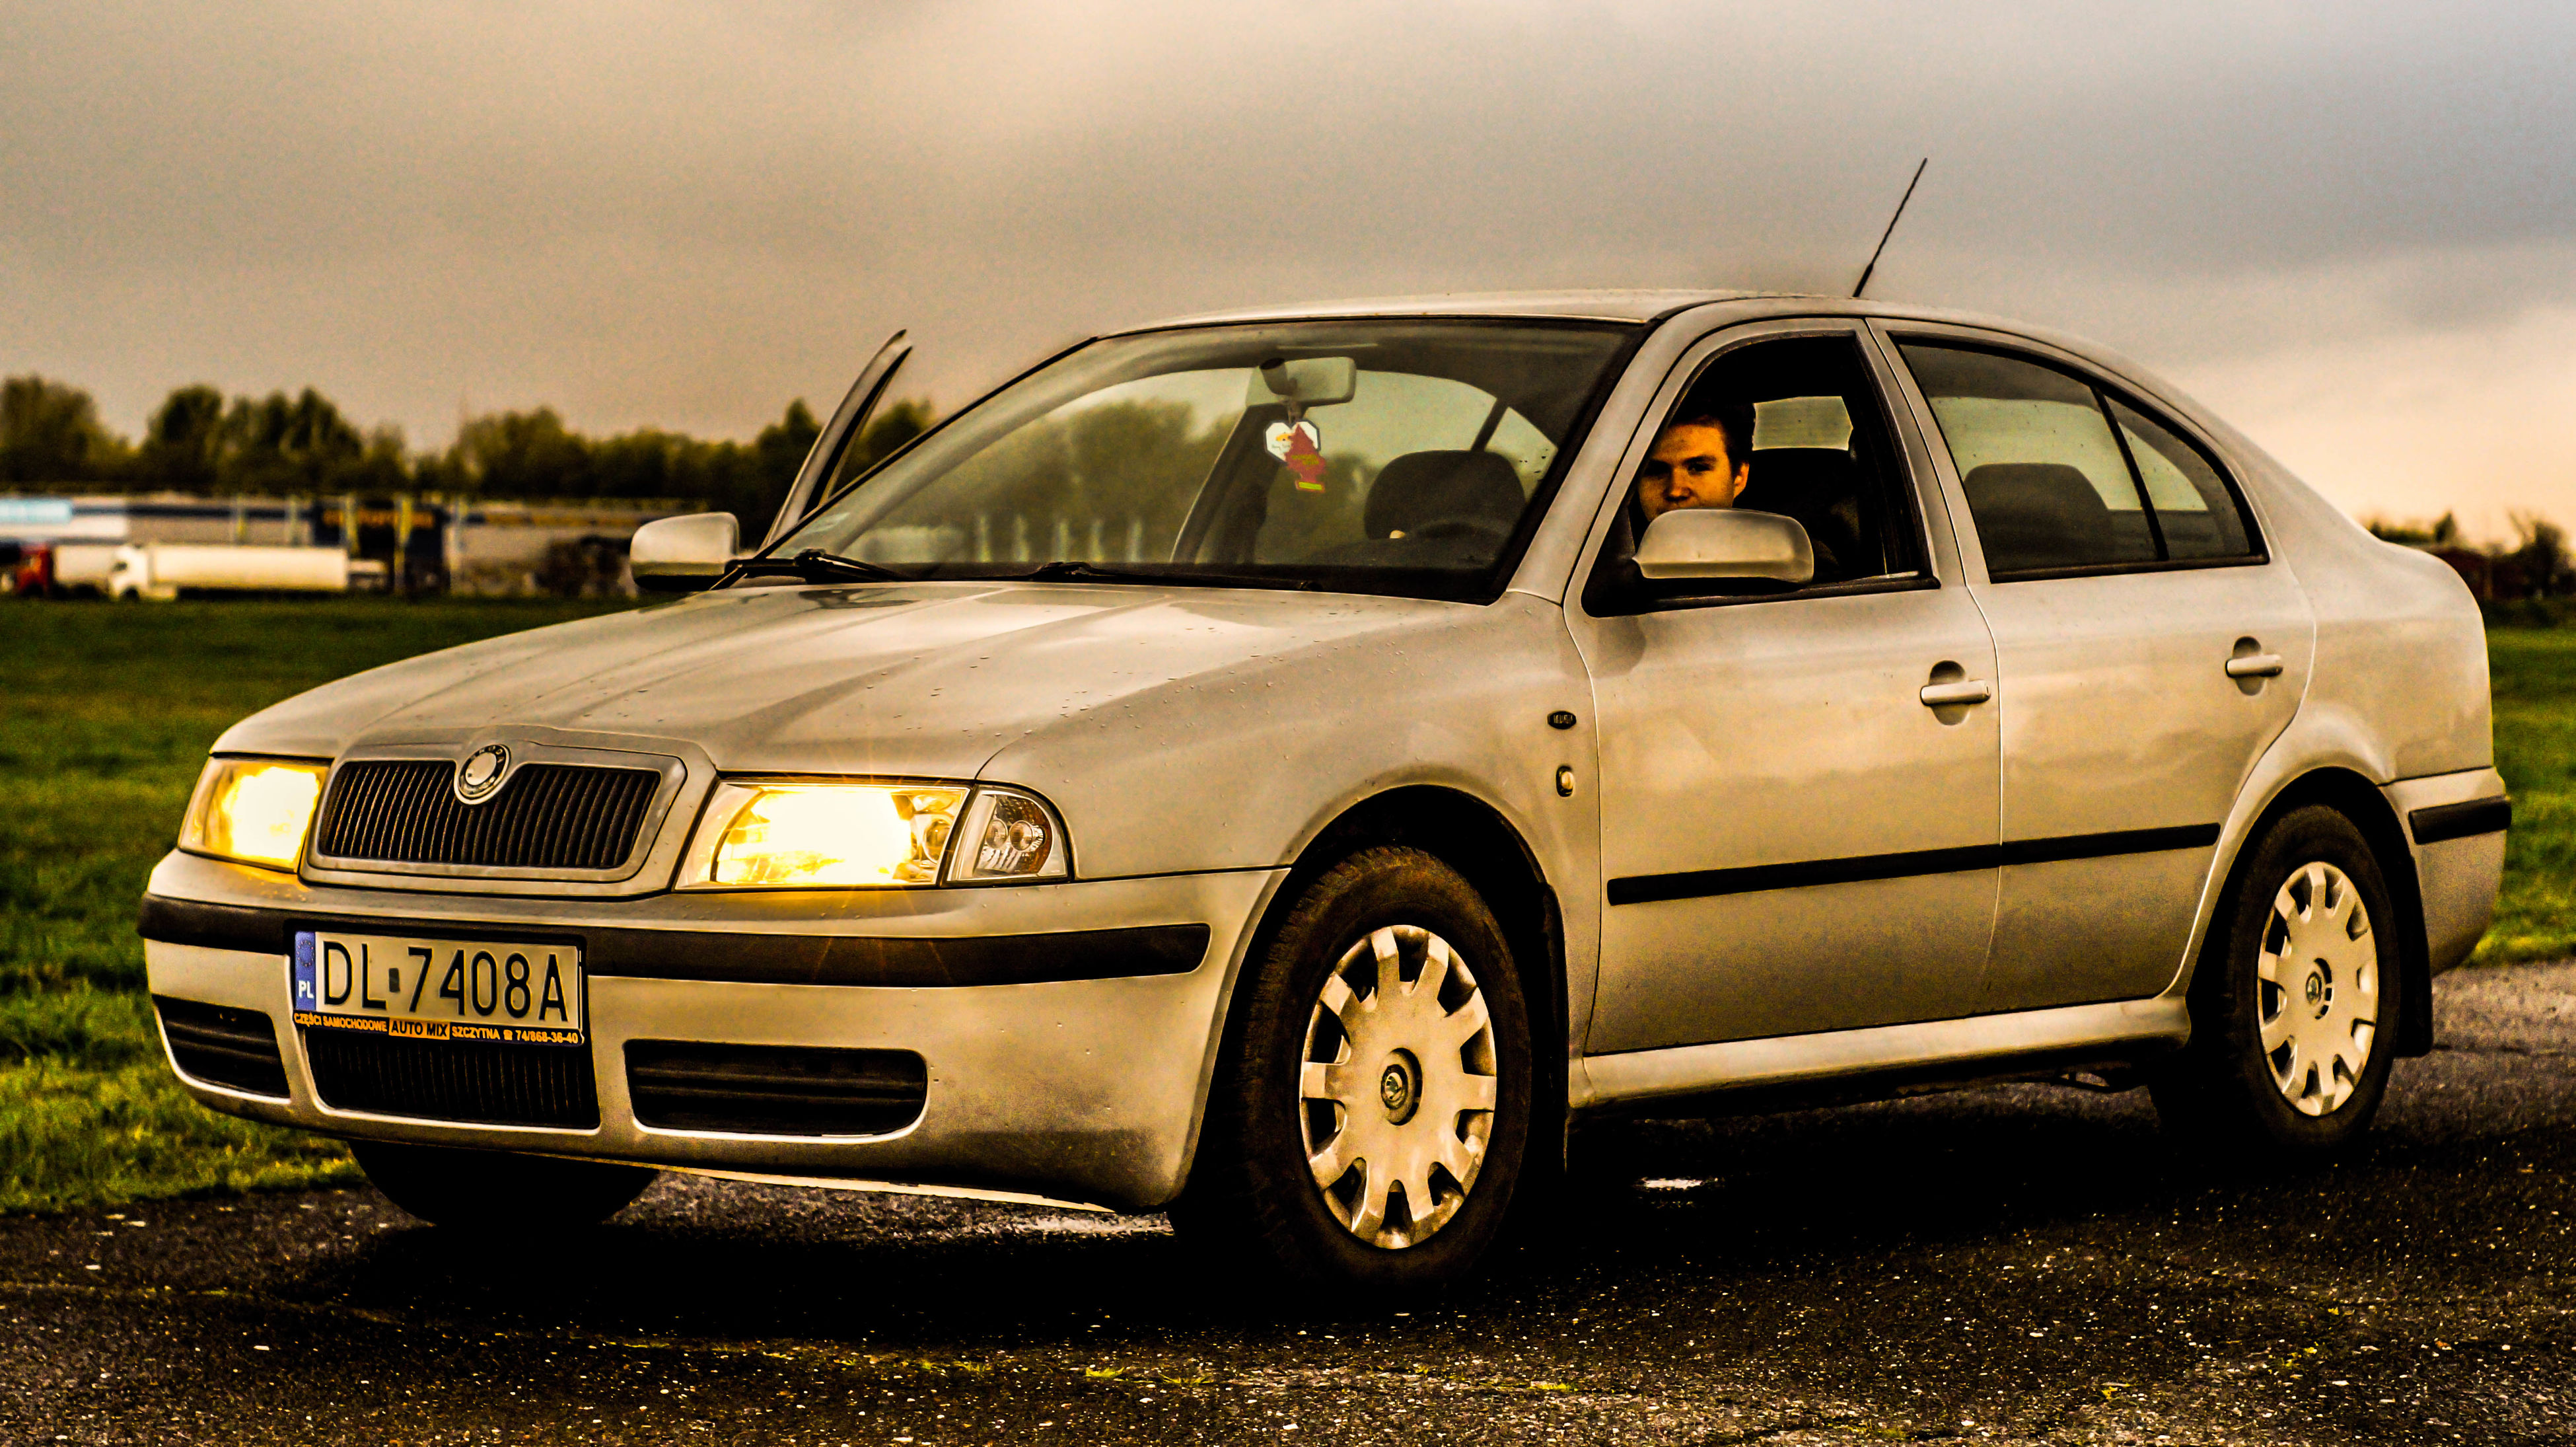 car, transportation, land vehicle, mode of transport, sky, no people, old-fashioned, outdoors, tree, nature, day, collector's car